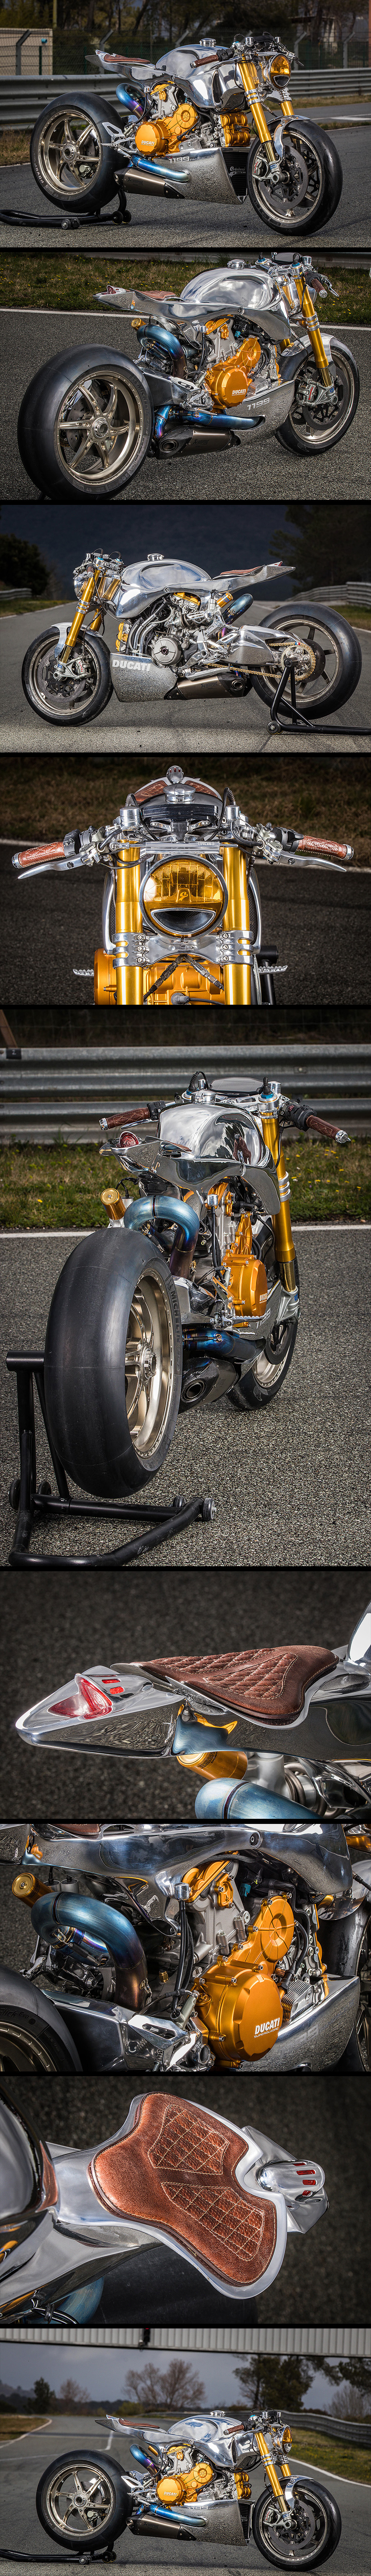 Ducati 1199 S Panigale Racer by Ortolani Customs